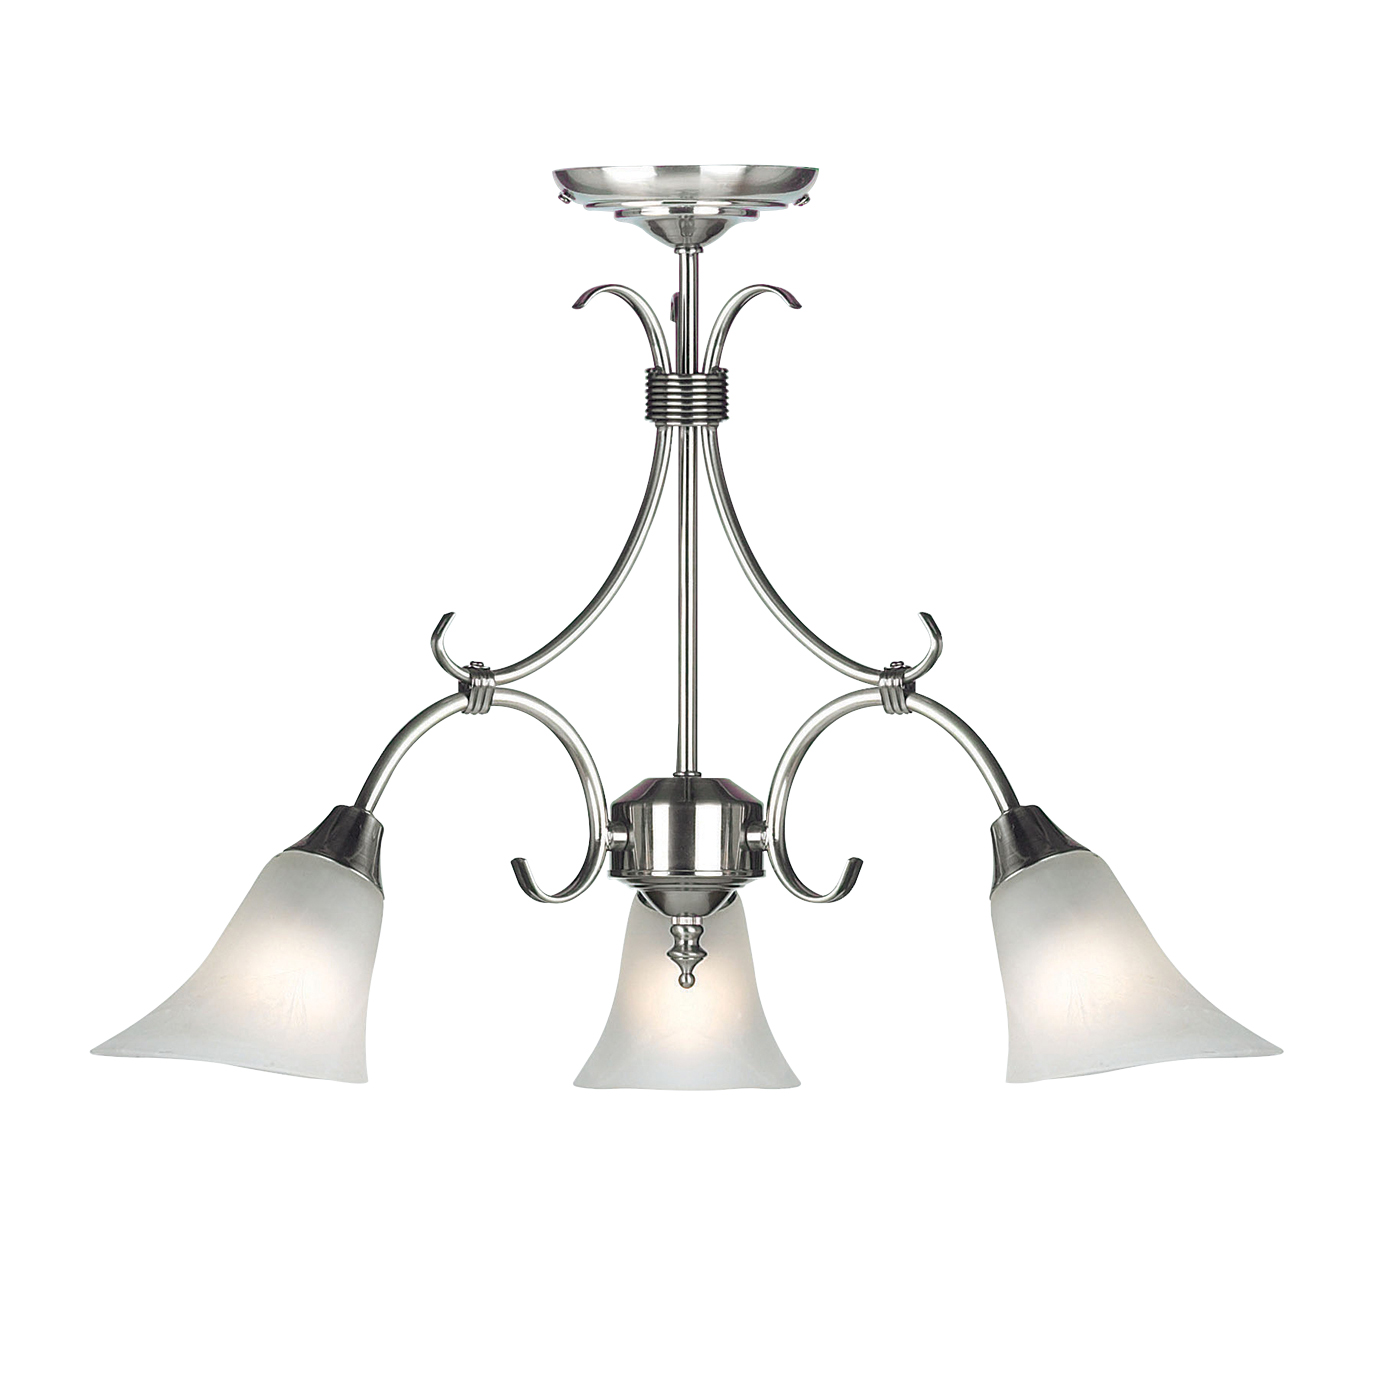 Endon Hardwick pendant 3x 40W Antique silver effect plate & frosted glass